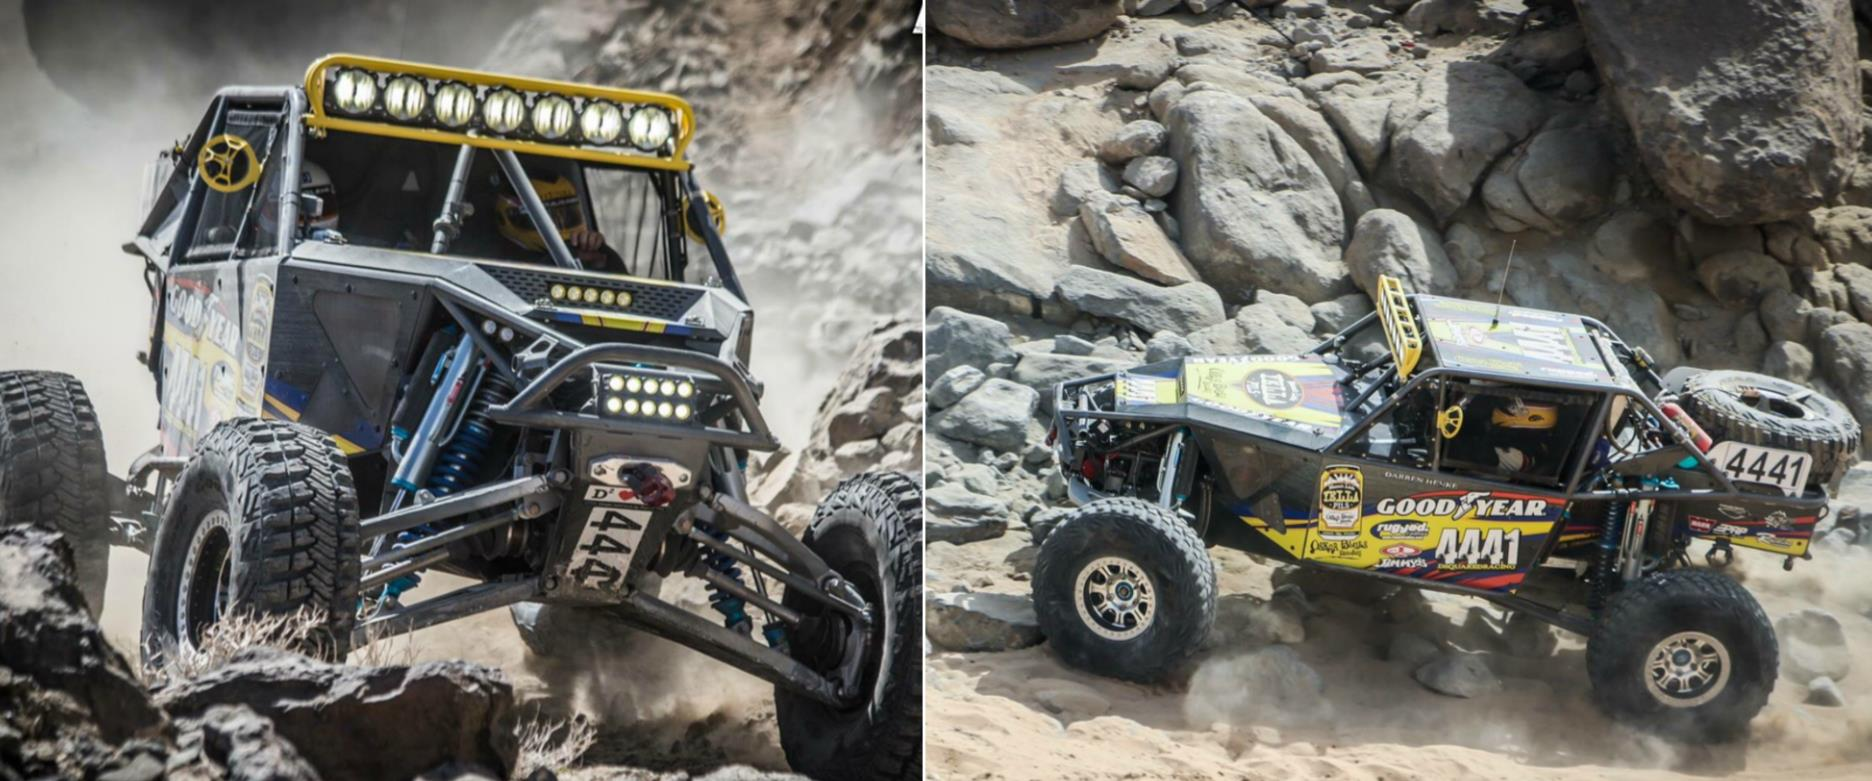 Side by side shot of the Dsquared team racing at KOH 2017